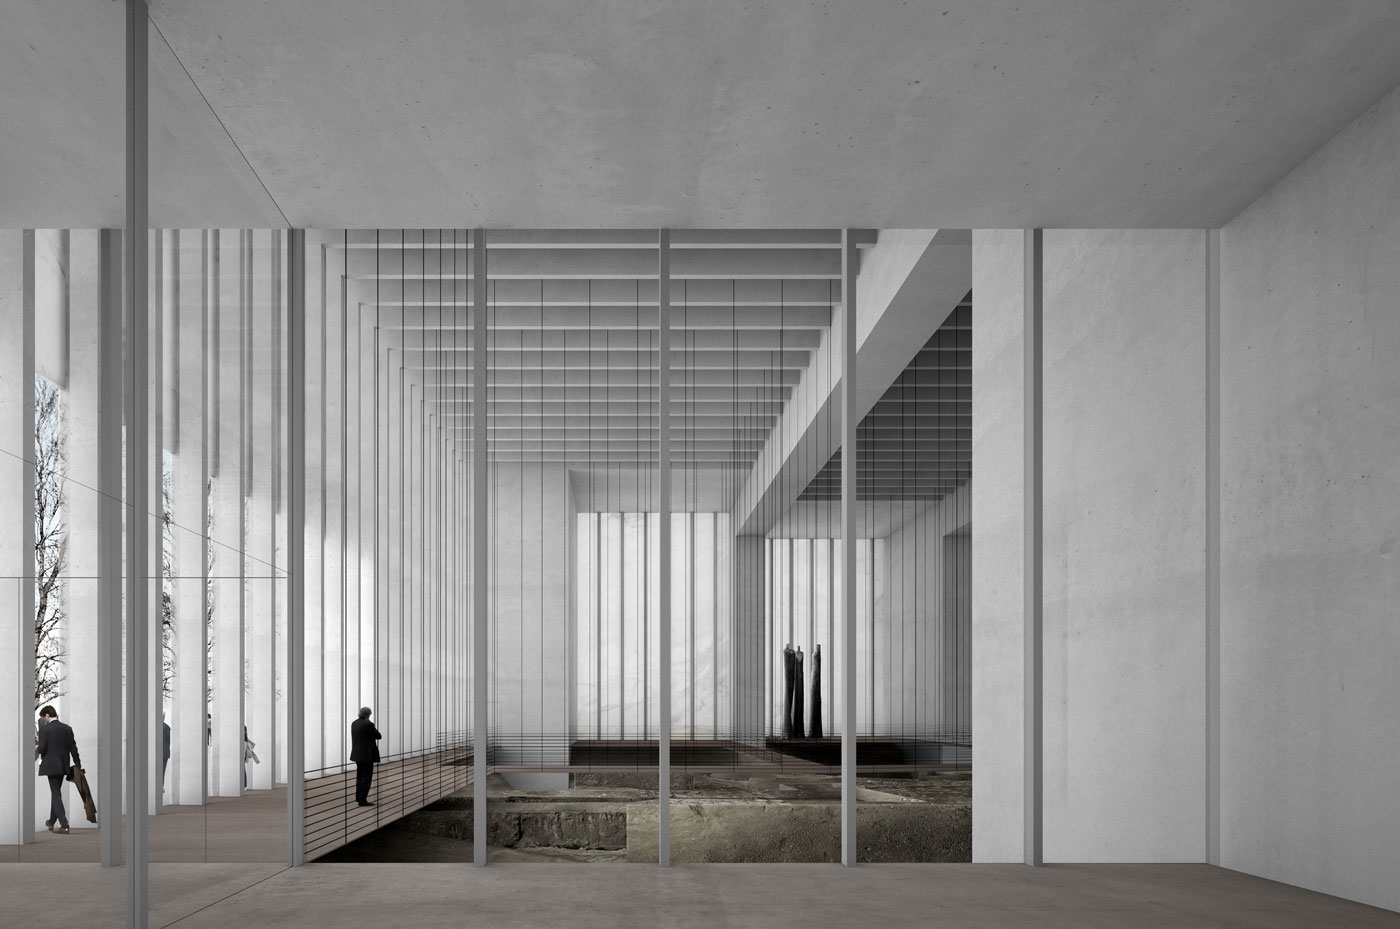 Foyer Des Art : Musée des beaux arts david chipperfield beta